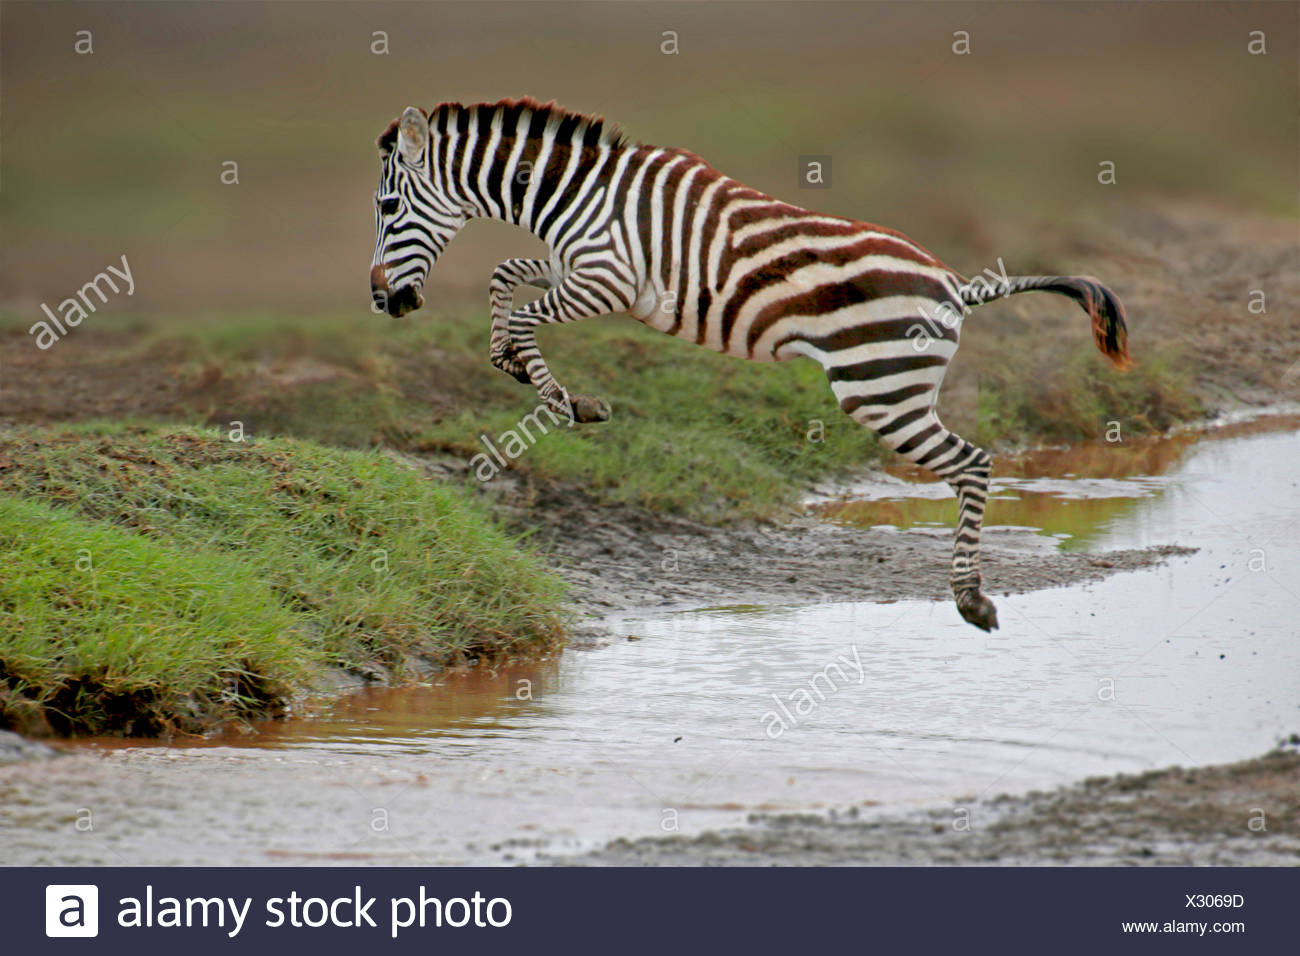 Common Zebra (Equus quagga), jumping over a creek, Tanzania, Serengeti National Park - Stock Image